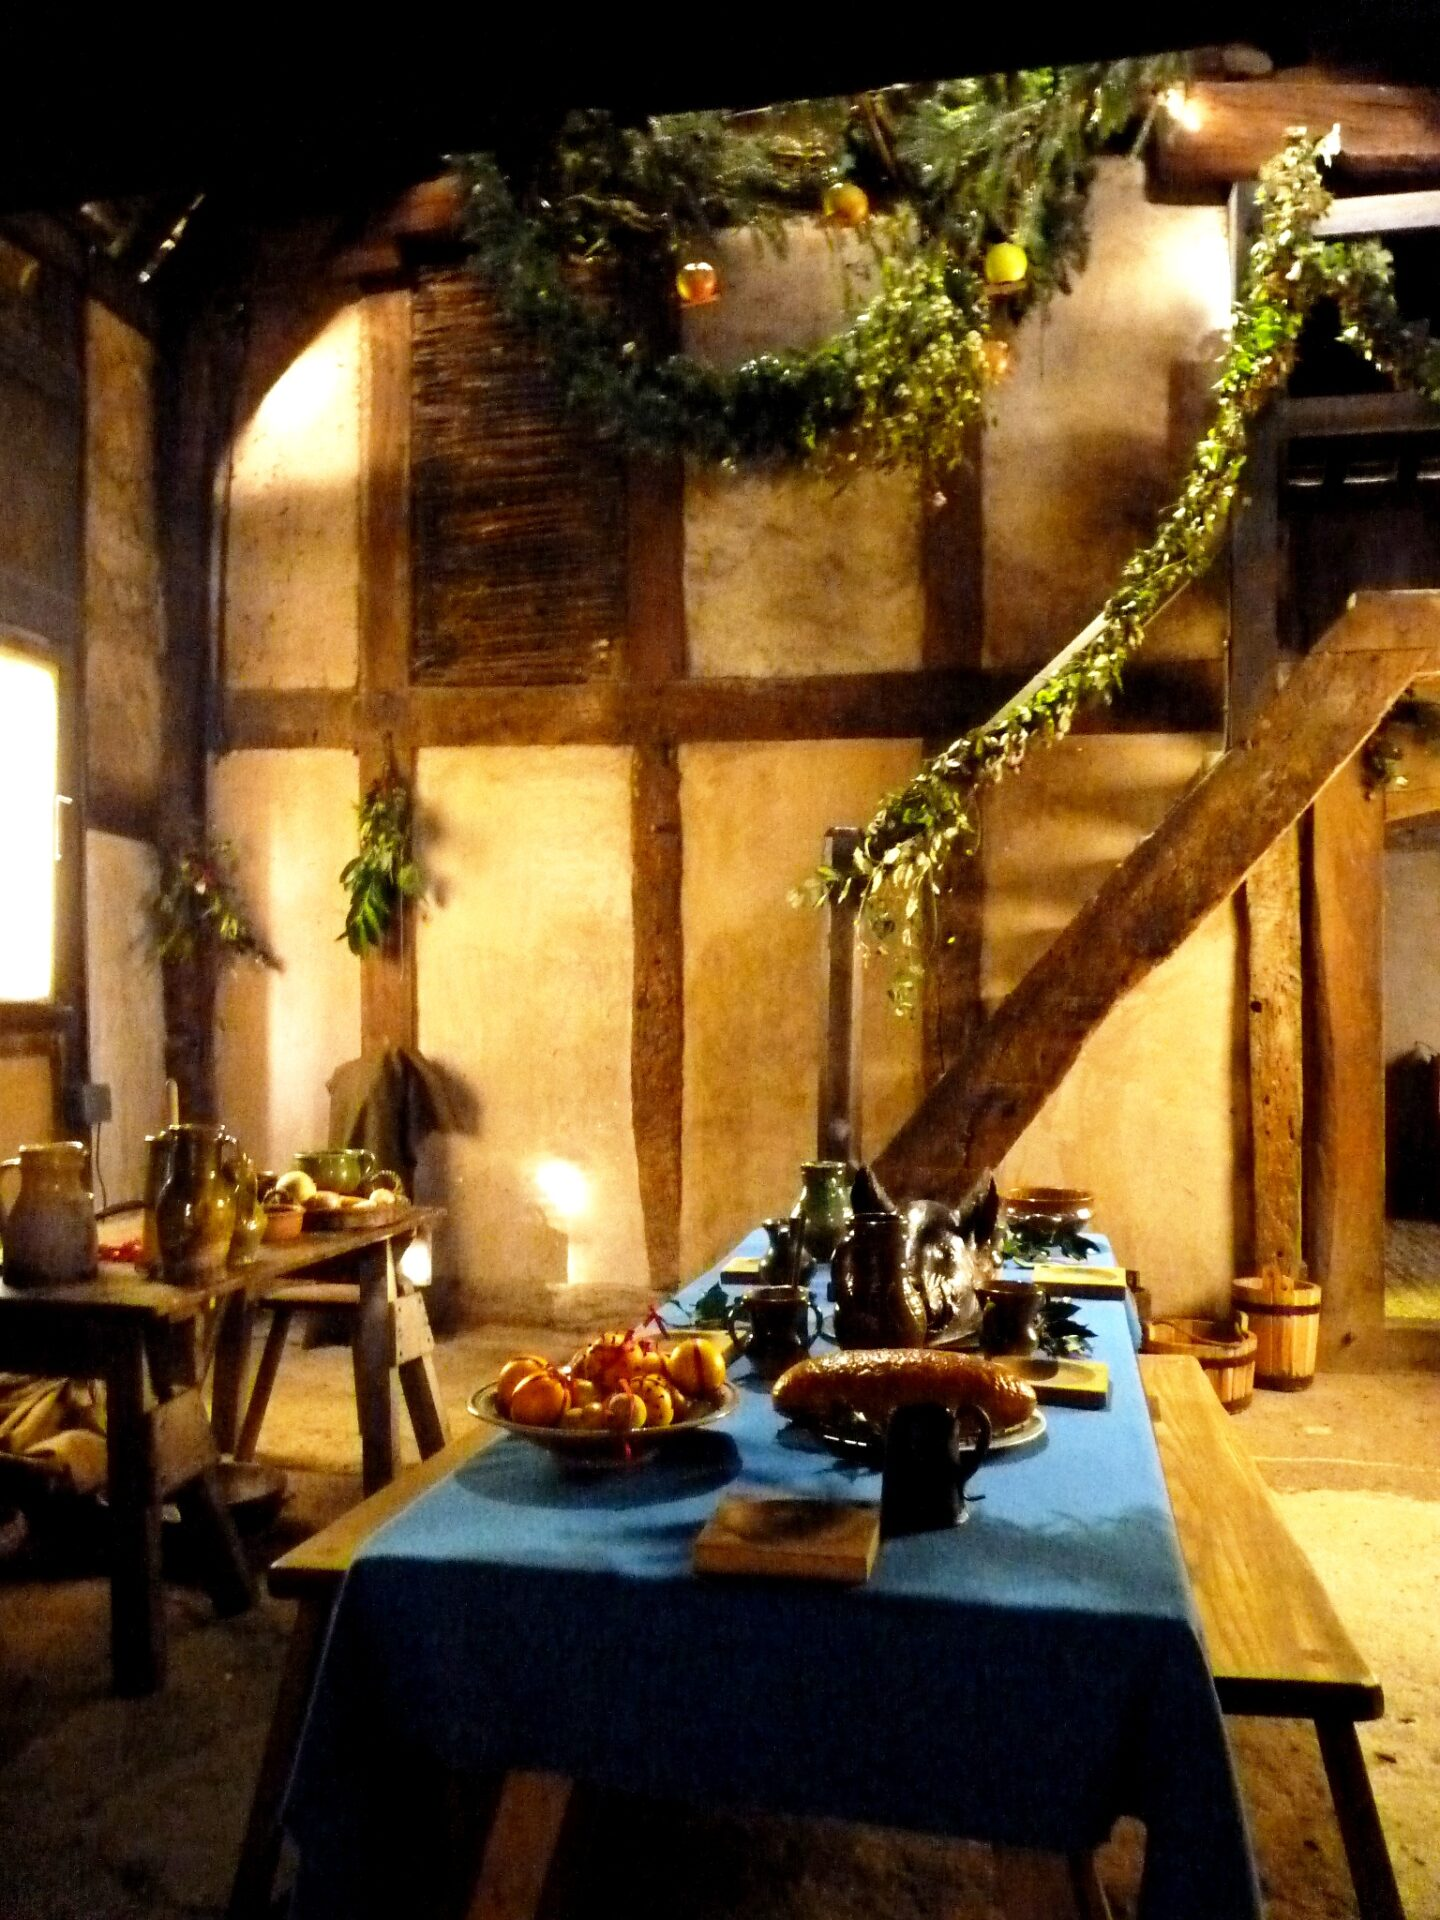 Christmas at Avoncroft 1400-1700 – 4th and 5th December 2021